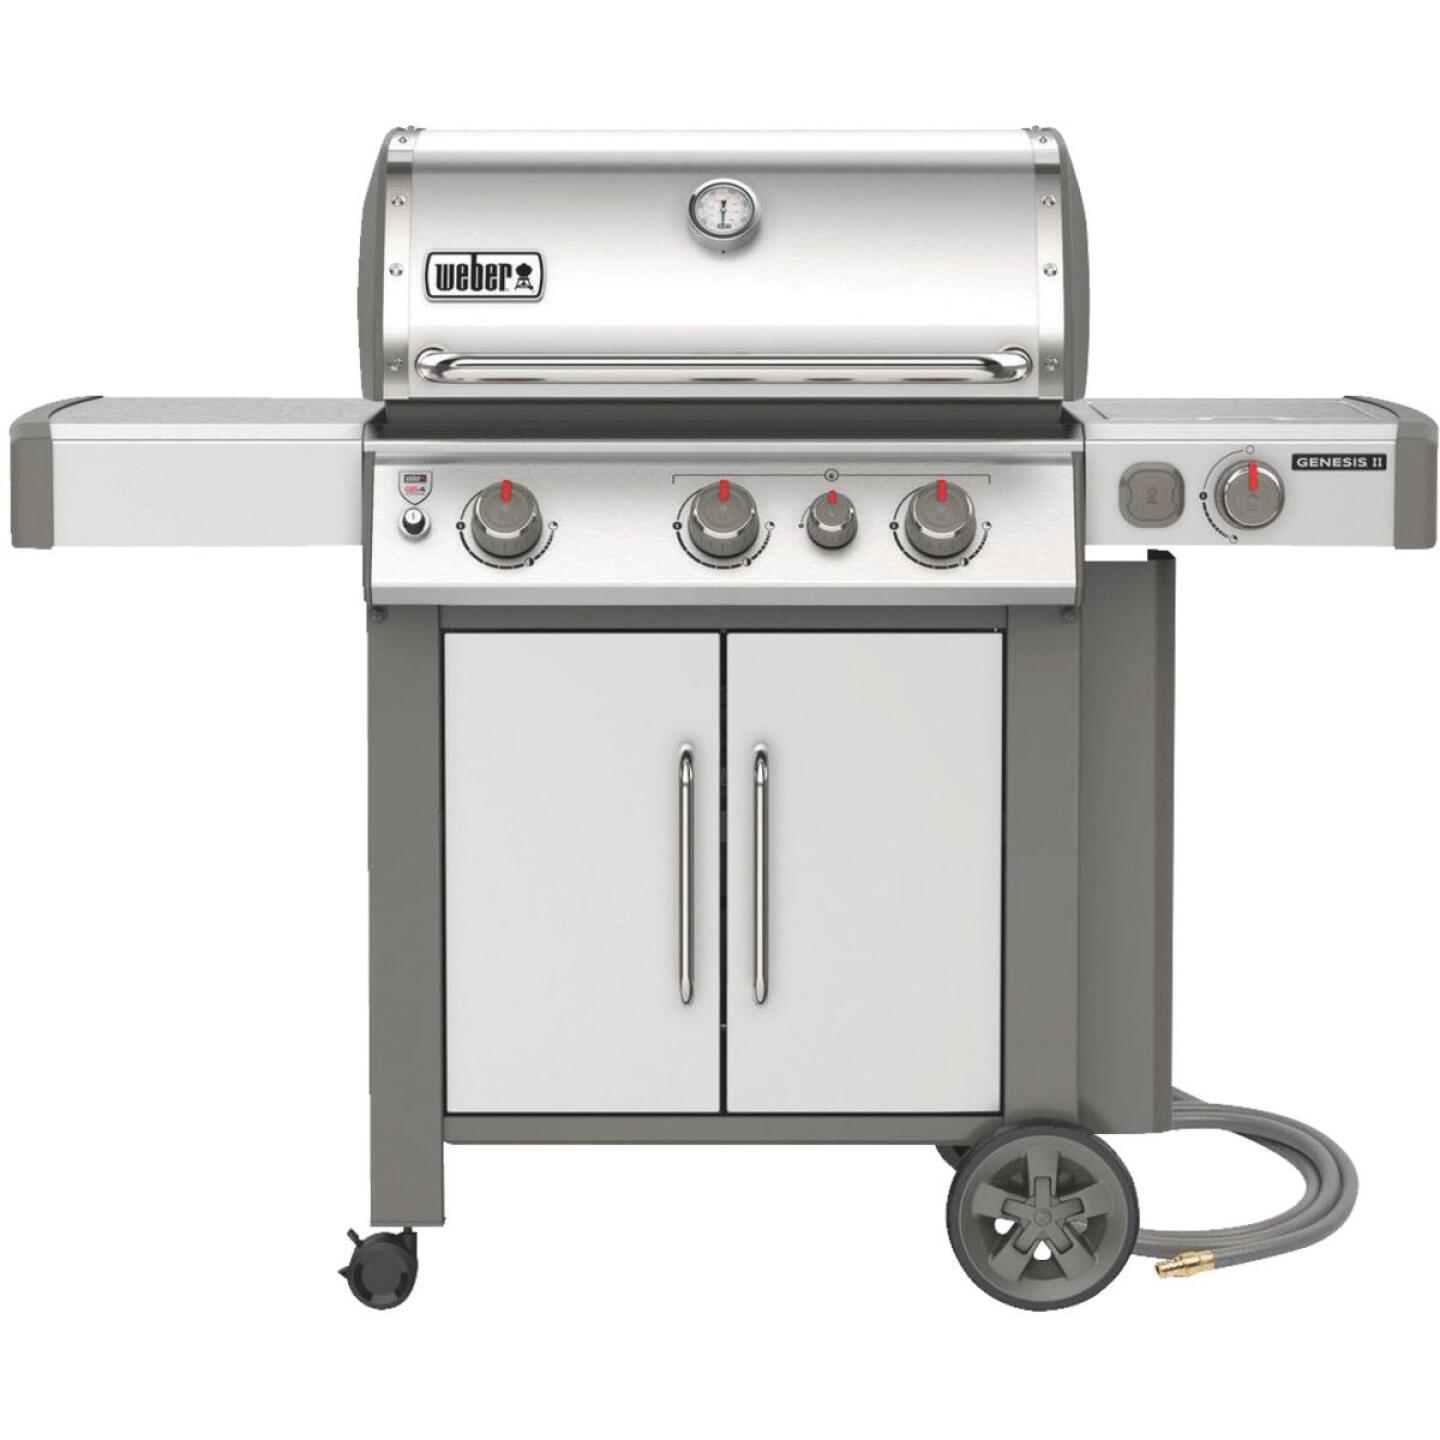 Weber Genesis II S-335 3-Burner Stainless Steel 39,000 BTU Natural Gas Grill with 12,000 BTU Side -Burner Image 1